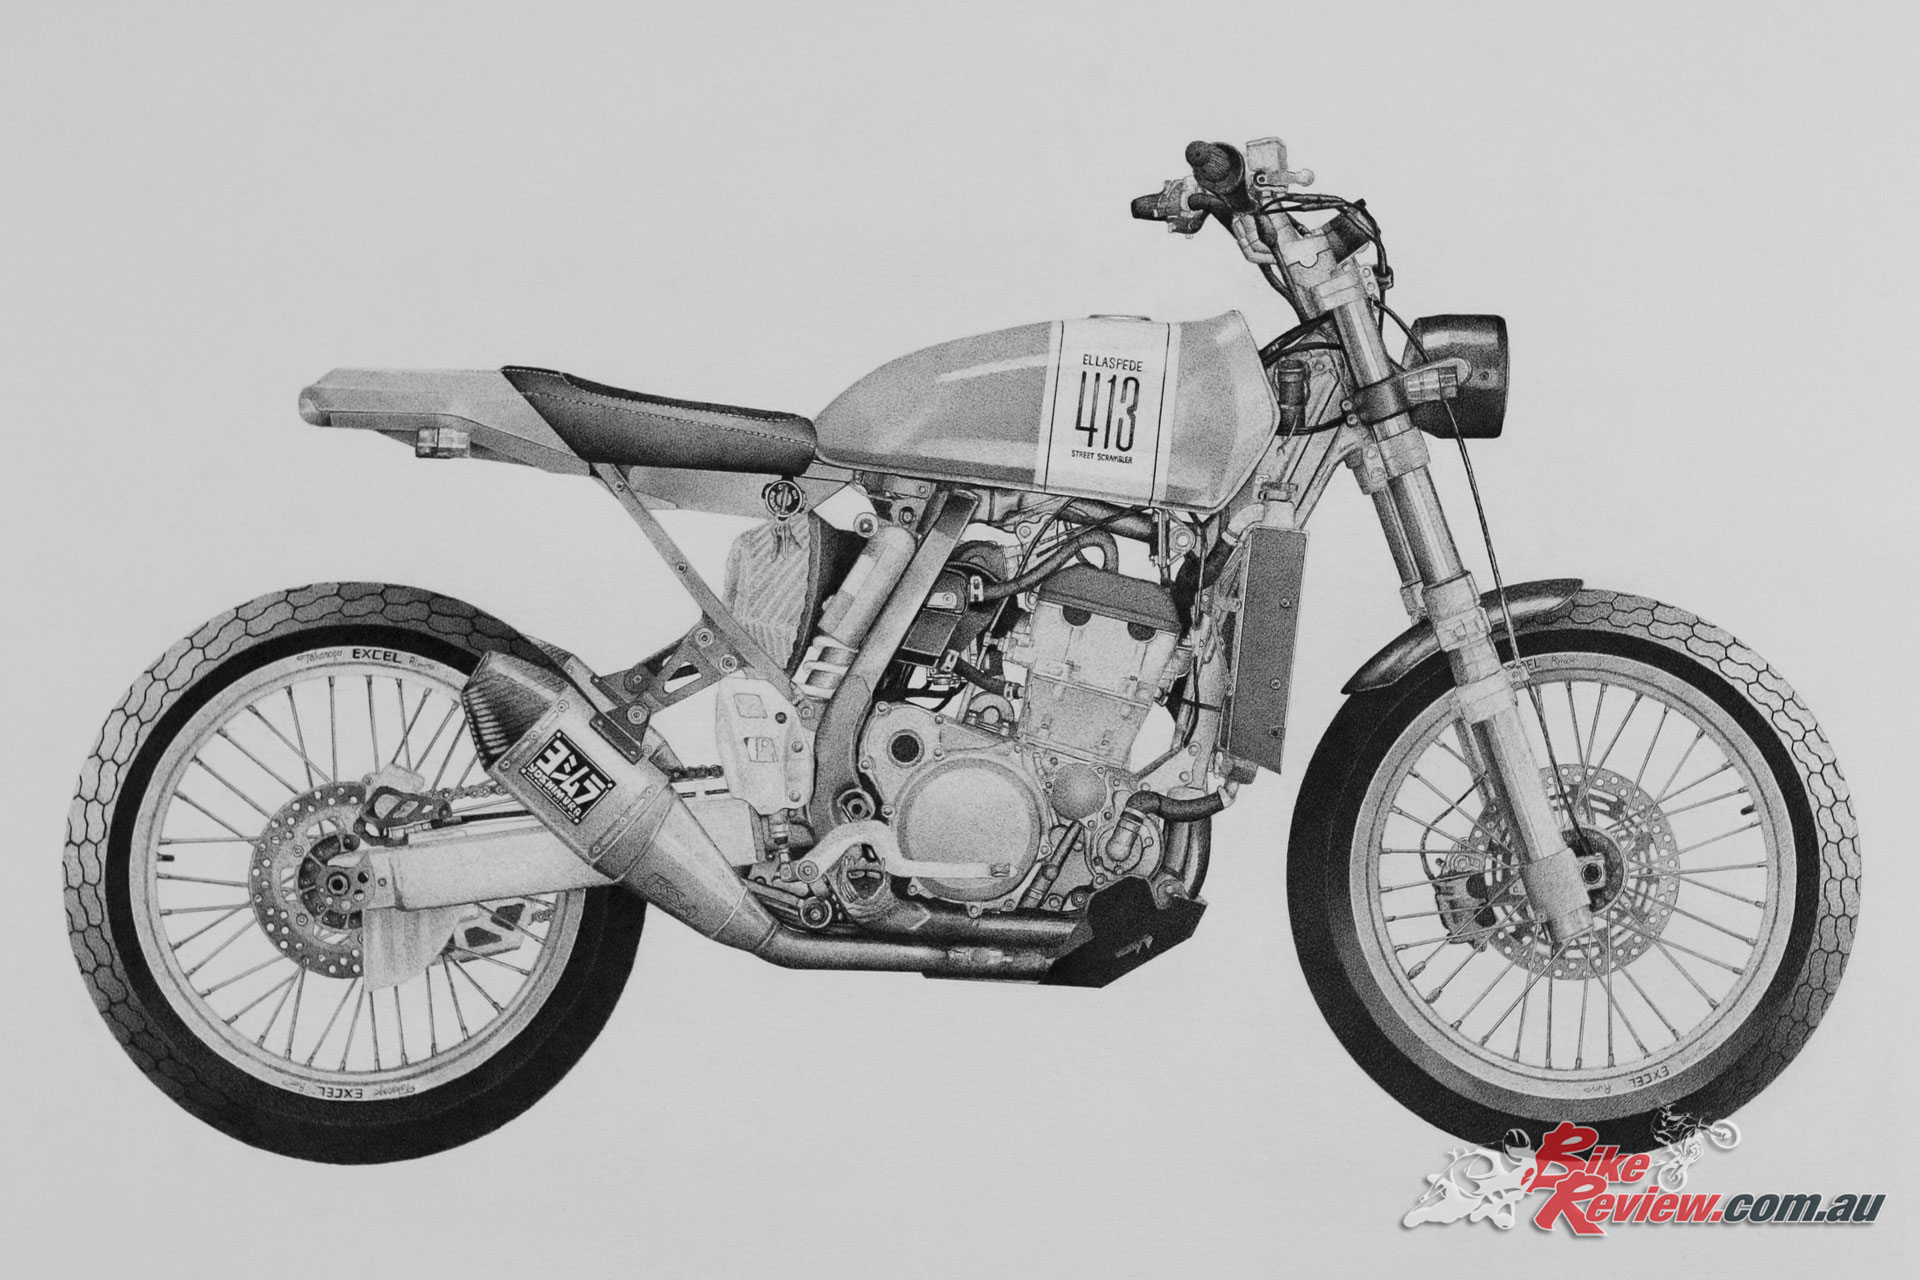 2017 Sydney Motorcycle Show to include unique art showcase